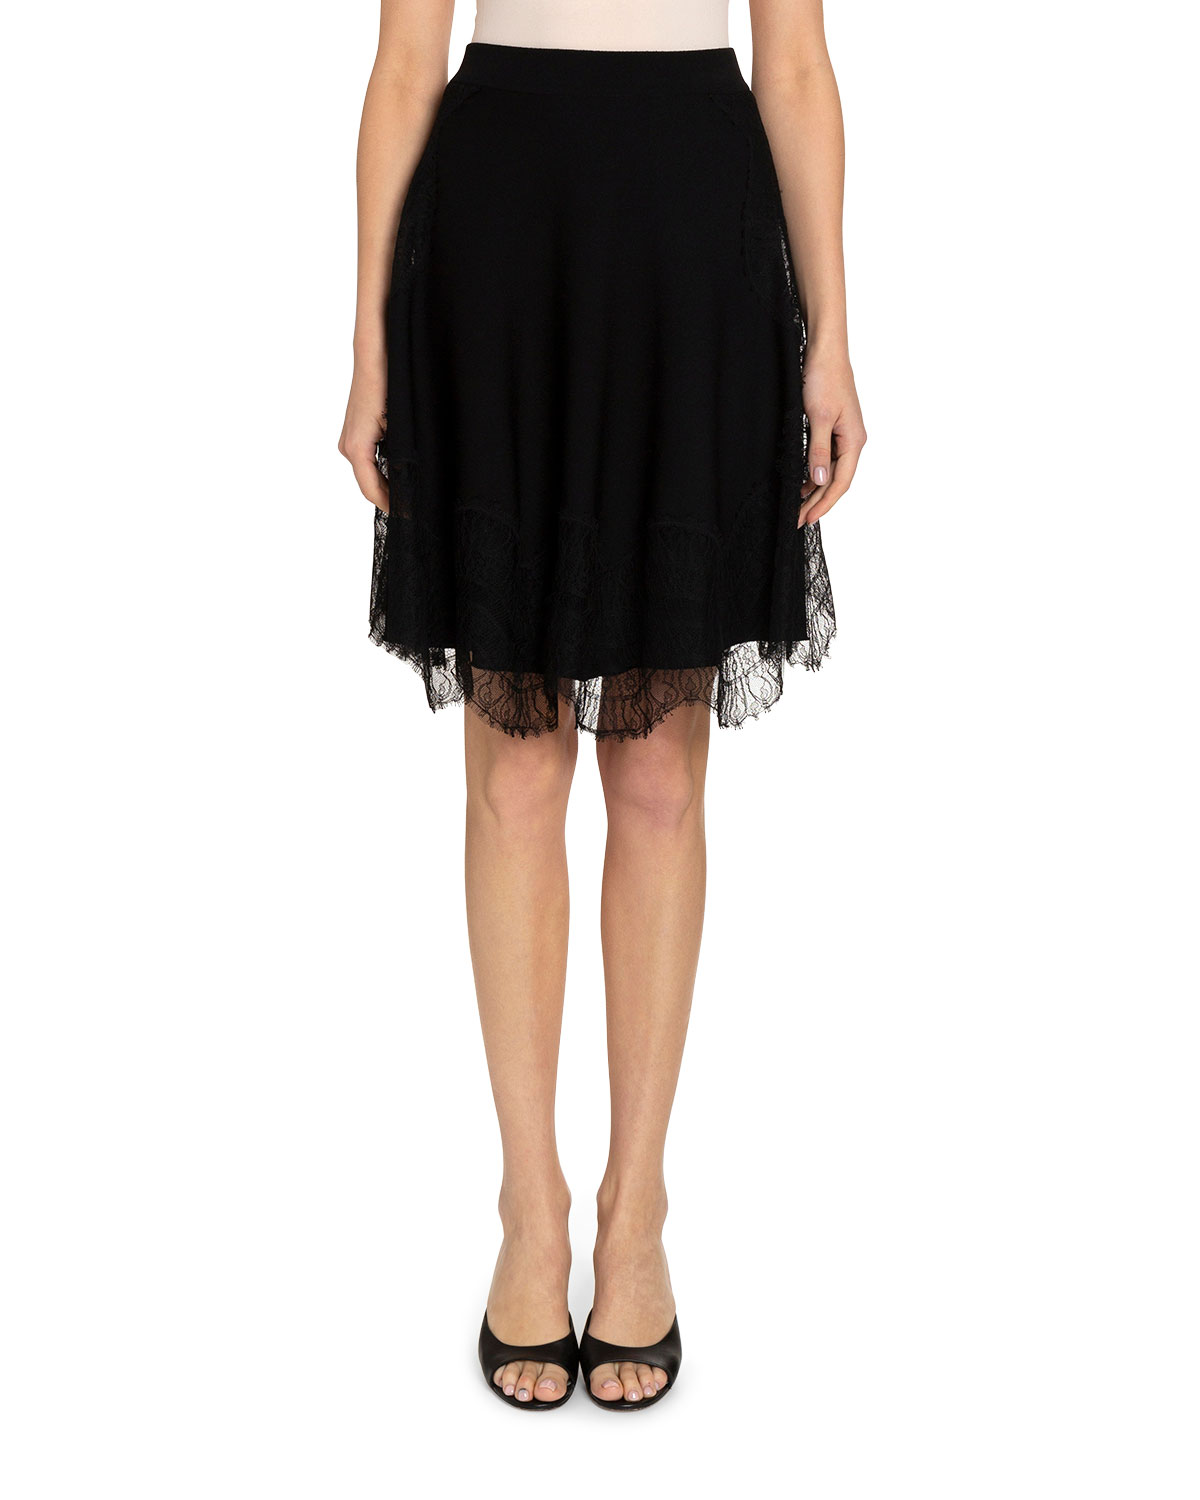 Givenchy Skirts WAVY LACE SKIRT